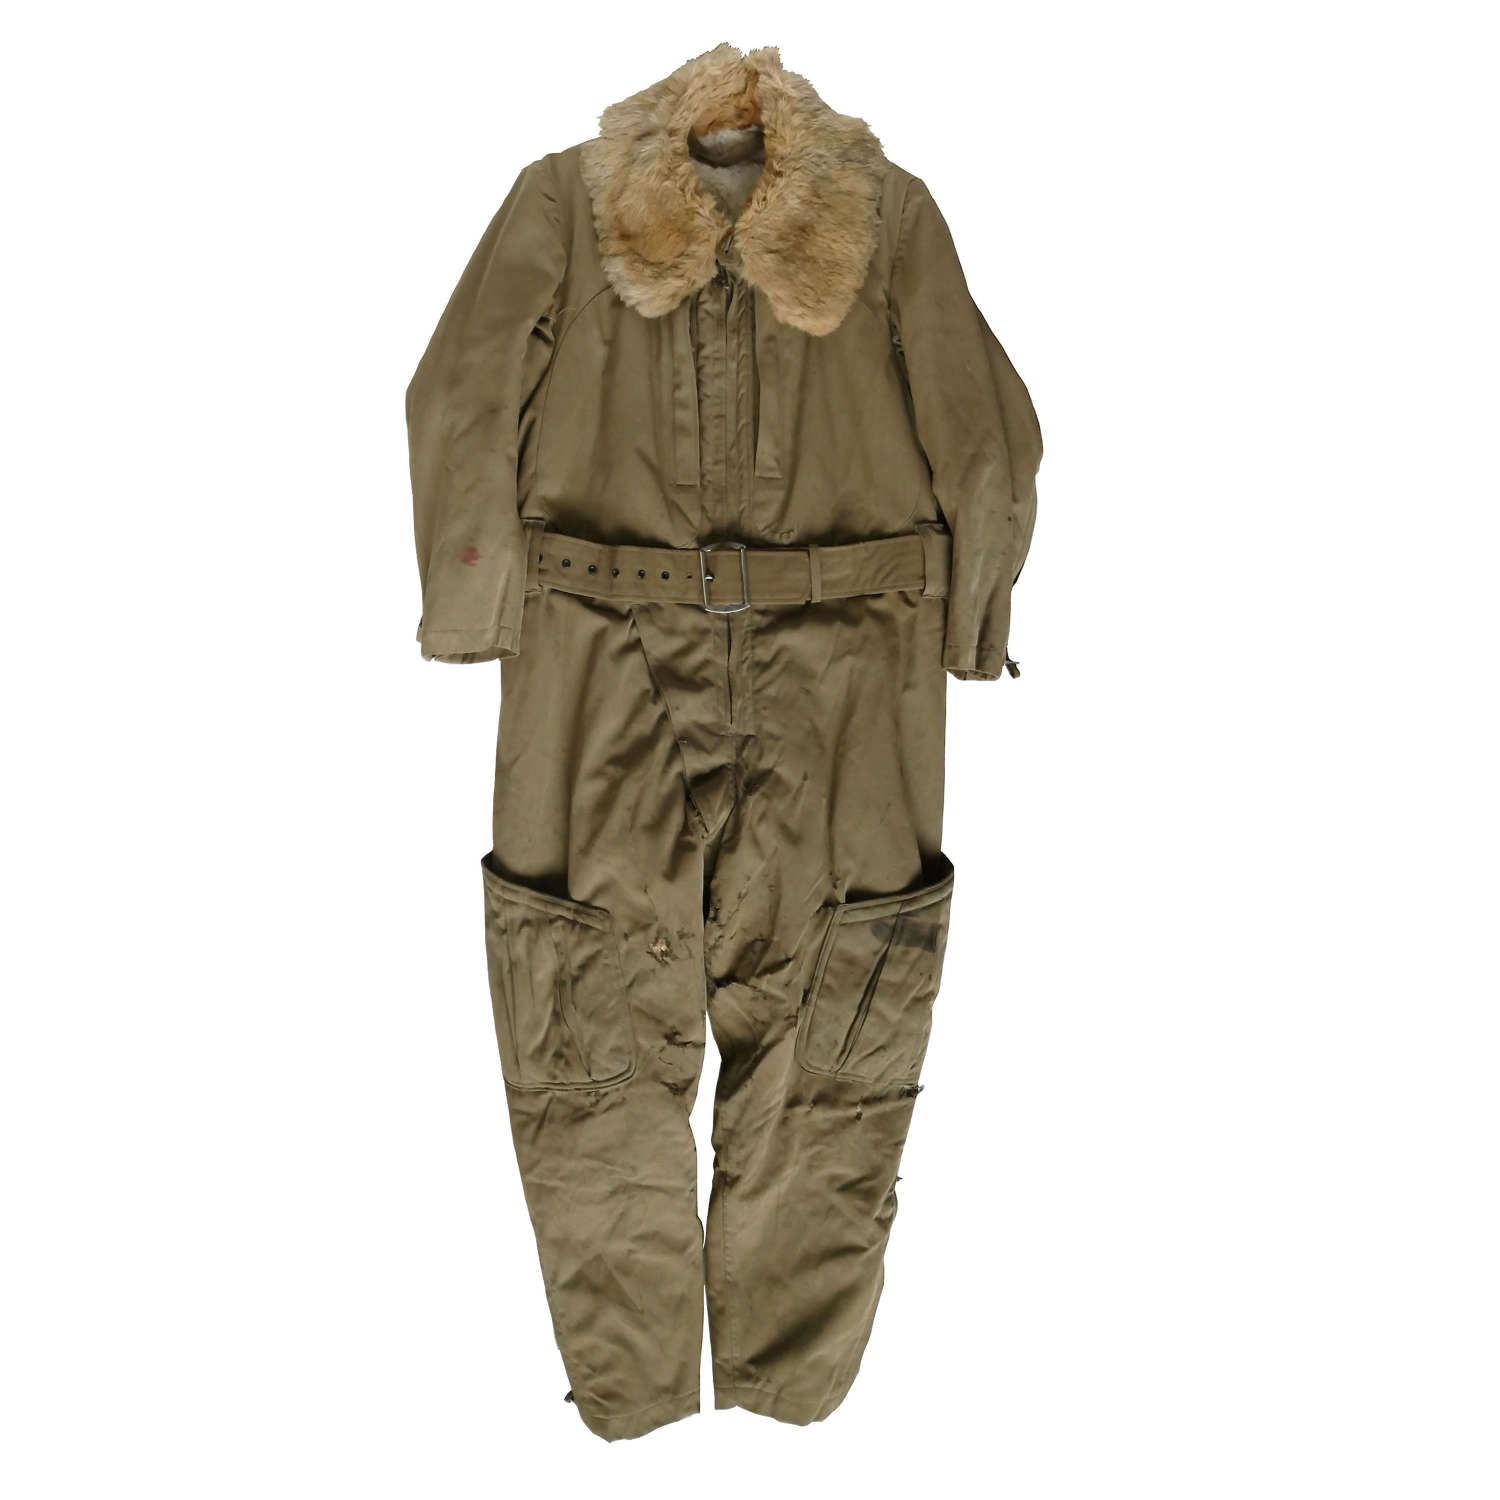 Japanese Army winter flying suit